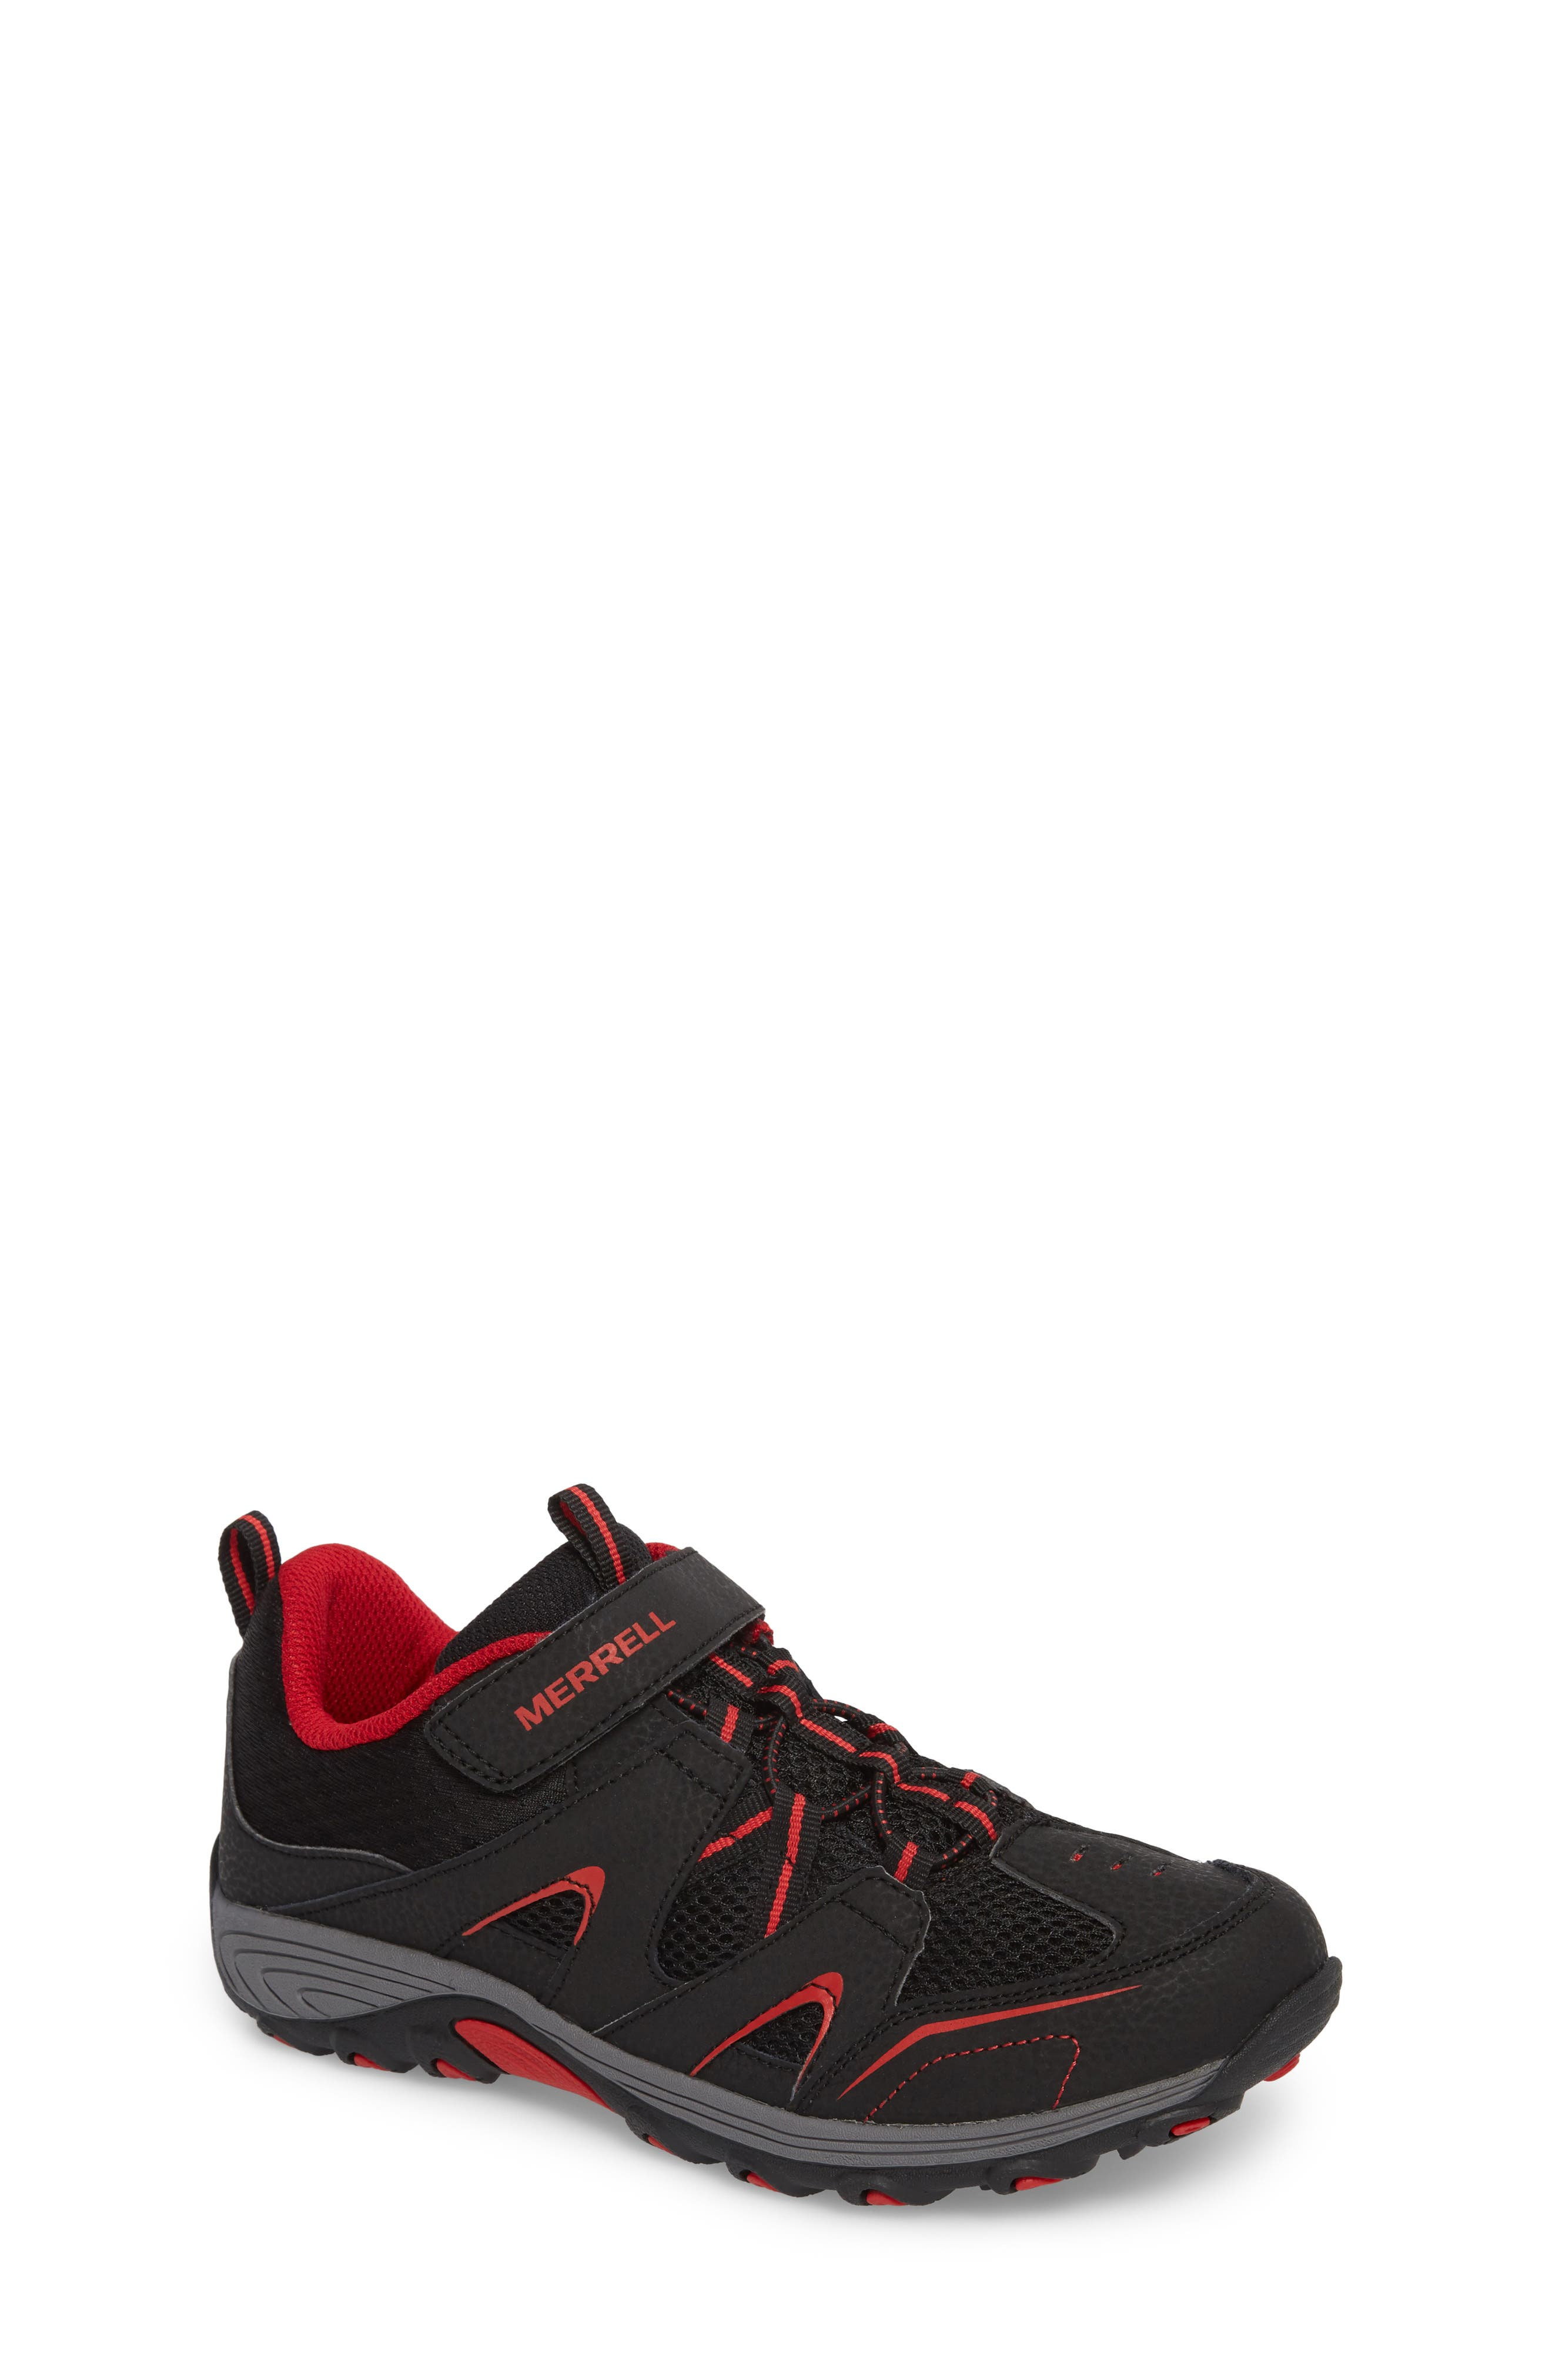 Trail Chaser Sneaker,                             Main thumbnail 1, color,